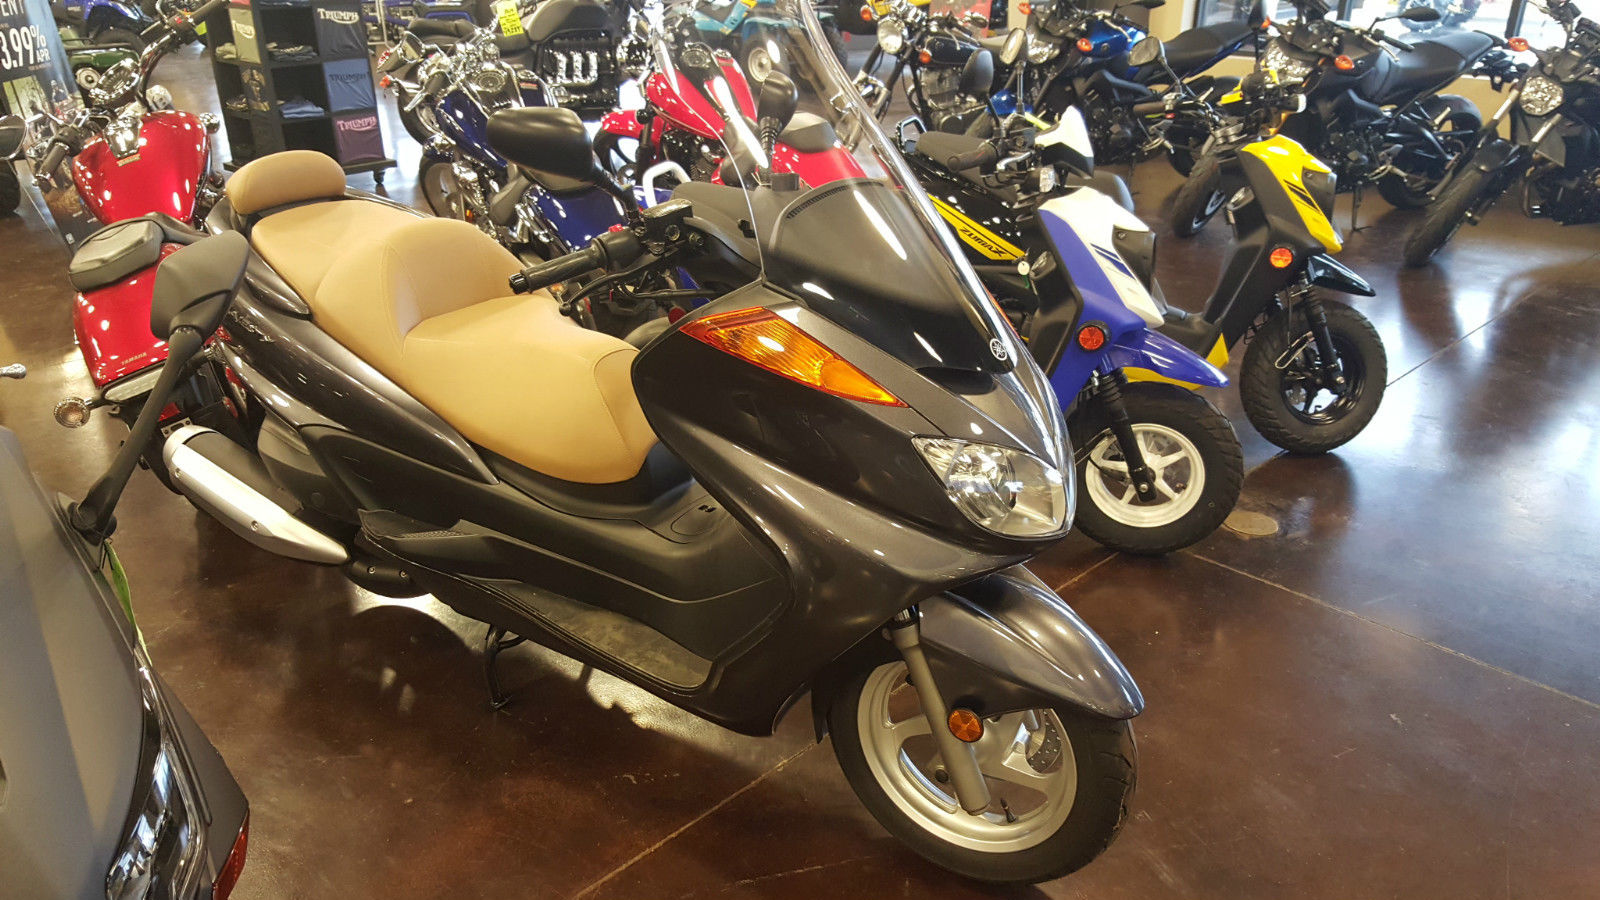 v star 1300 motorcycles with 2013 Yamaha Majesty 400cc Scooter on 2006 Yamaha Road Star Midnight Warrior Road Test as well 2008 Kawasaki Ninja 500r 2 2 likewise Photo 1 moreover Yamahas His N Hers Custom Cruisers moreover Triumph S New Cruisers With Harley Davidson Disguise 62973.